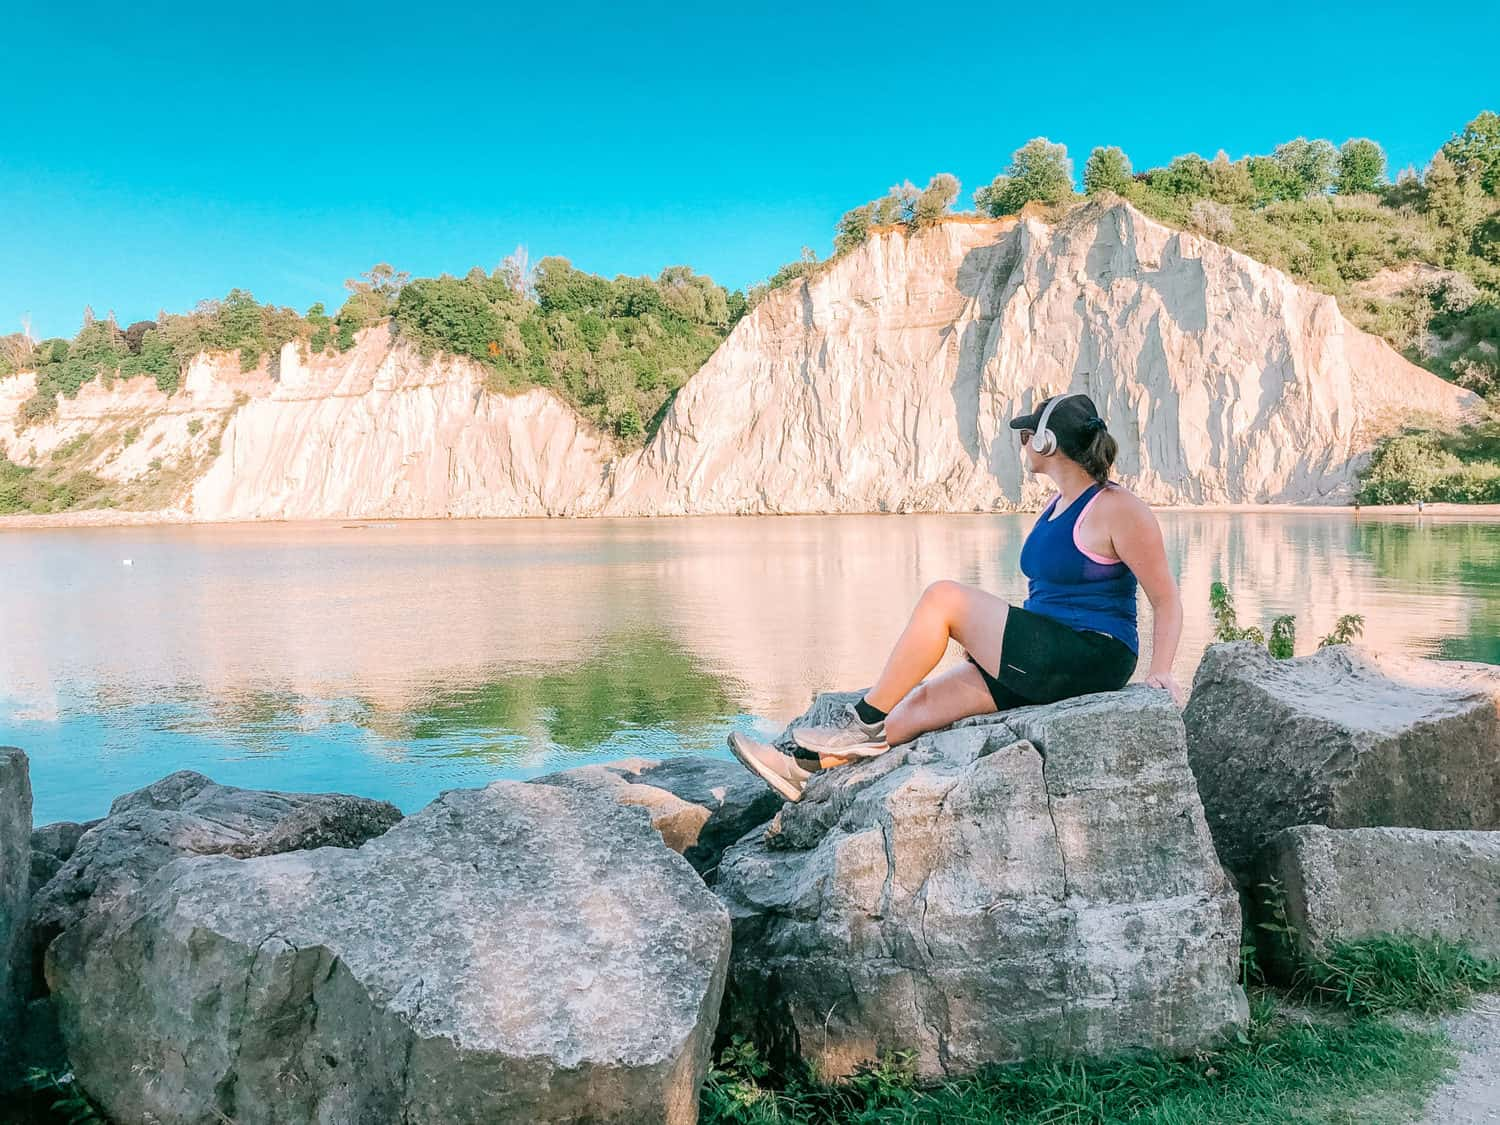 How to Make the Most of the Scarborough Bluffs